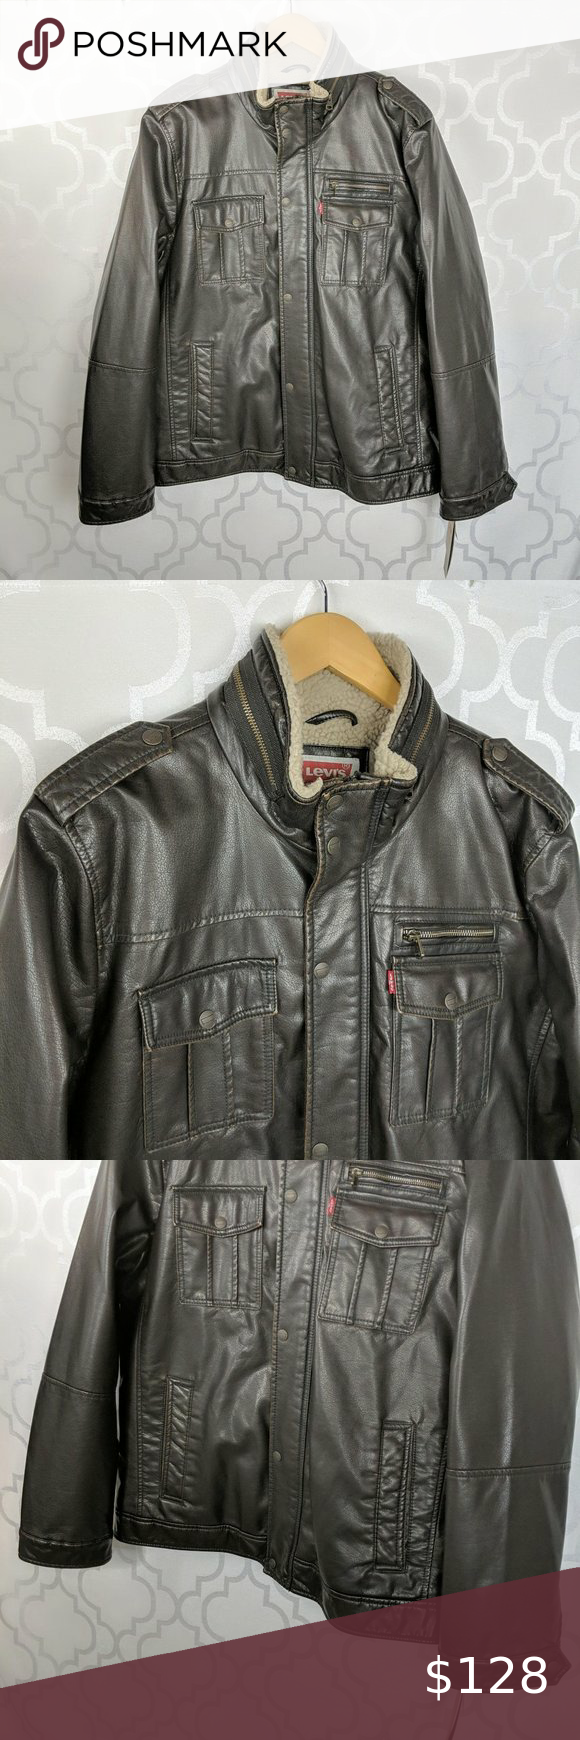 Levi S Brown Faux Leather Bomber Jacket New With Tags Levi S Brown Faux Leather Bomber Ja Faux Leather Bomber Leather Bomber Jacket Faux Leather Bomber Jacket [ 1740 x 580 Pixel ]